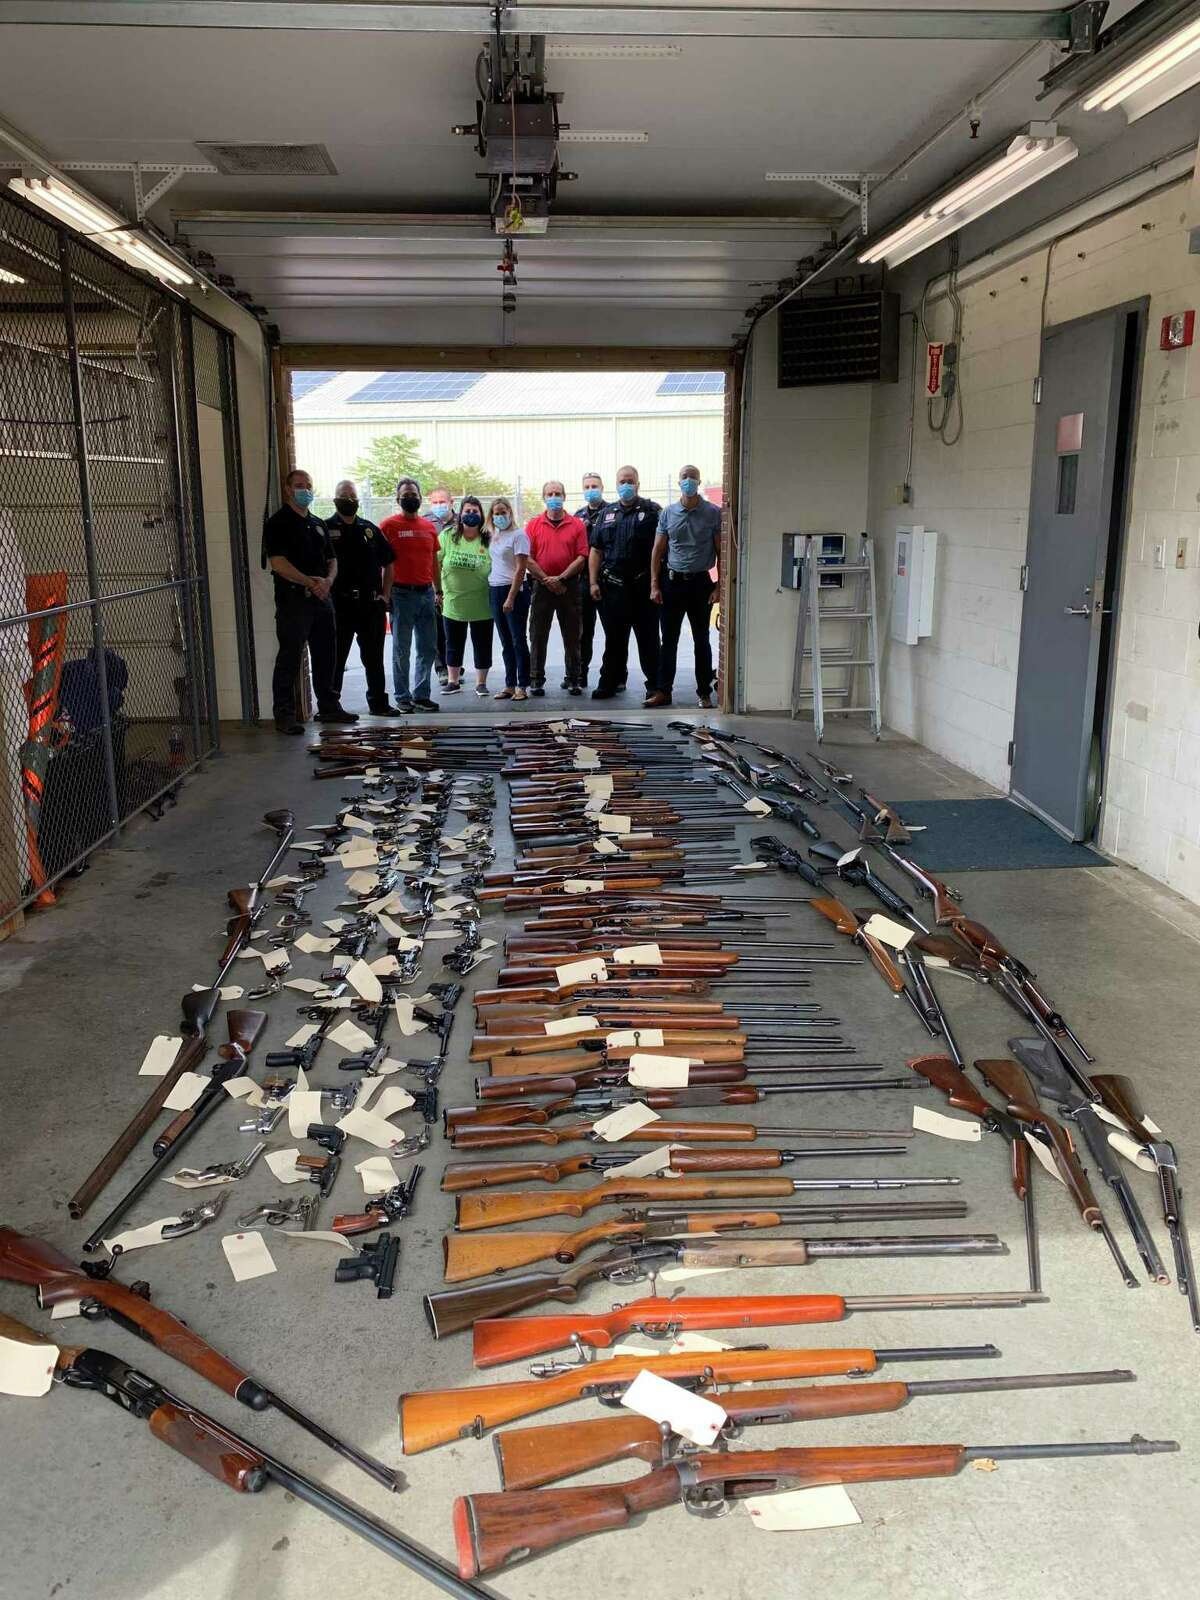 The Guilford Police Department collected 198 guns during its second annual guy buy-back and safe firearm storage event, held Saturday, Sept. 26, in conjunction with the Ethan Miller Strong Foundation and Swords to Plowshares Northeast.